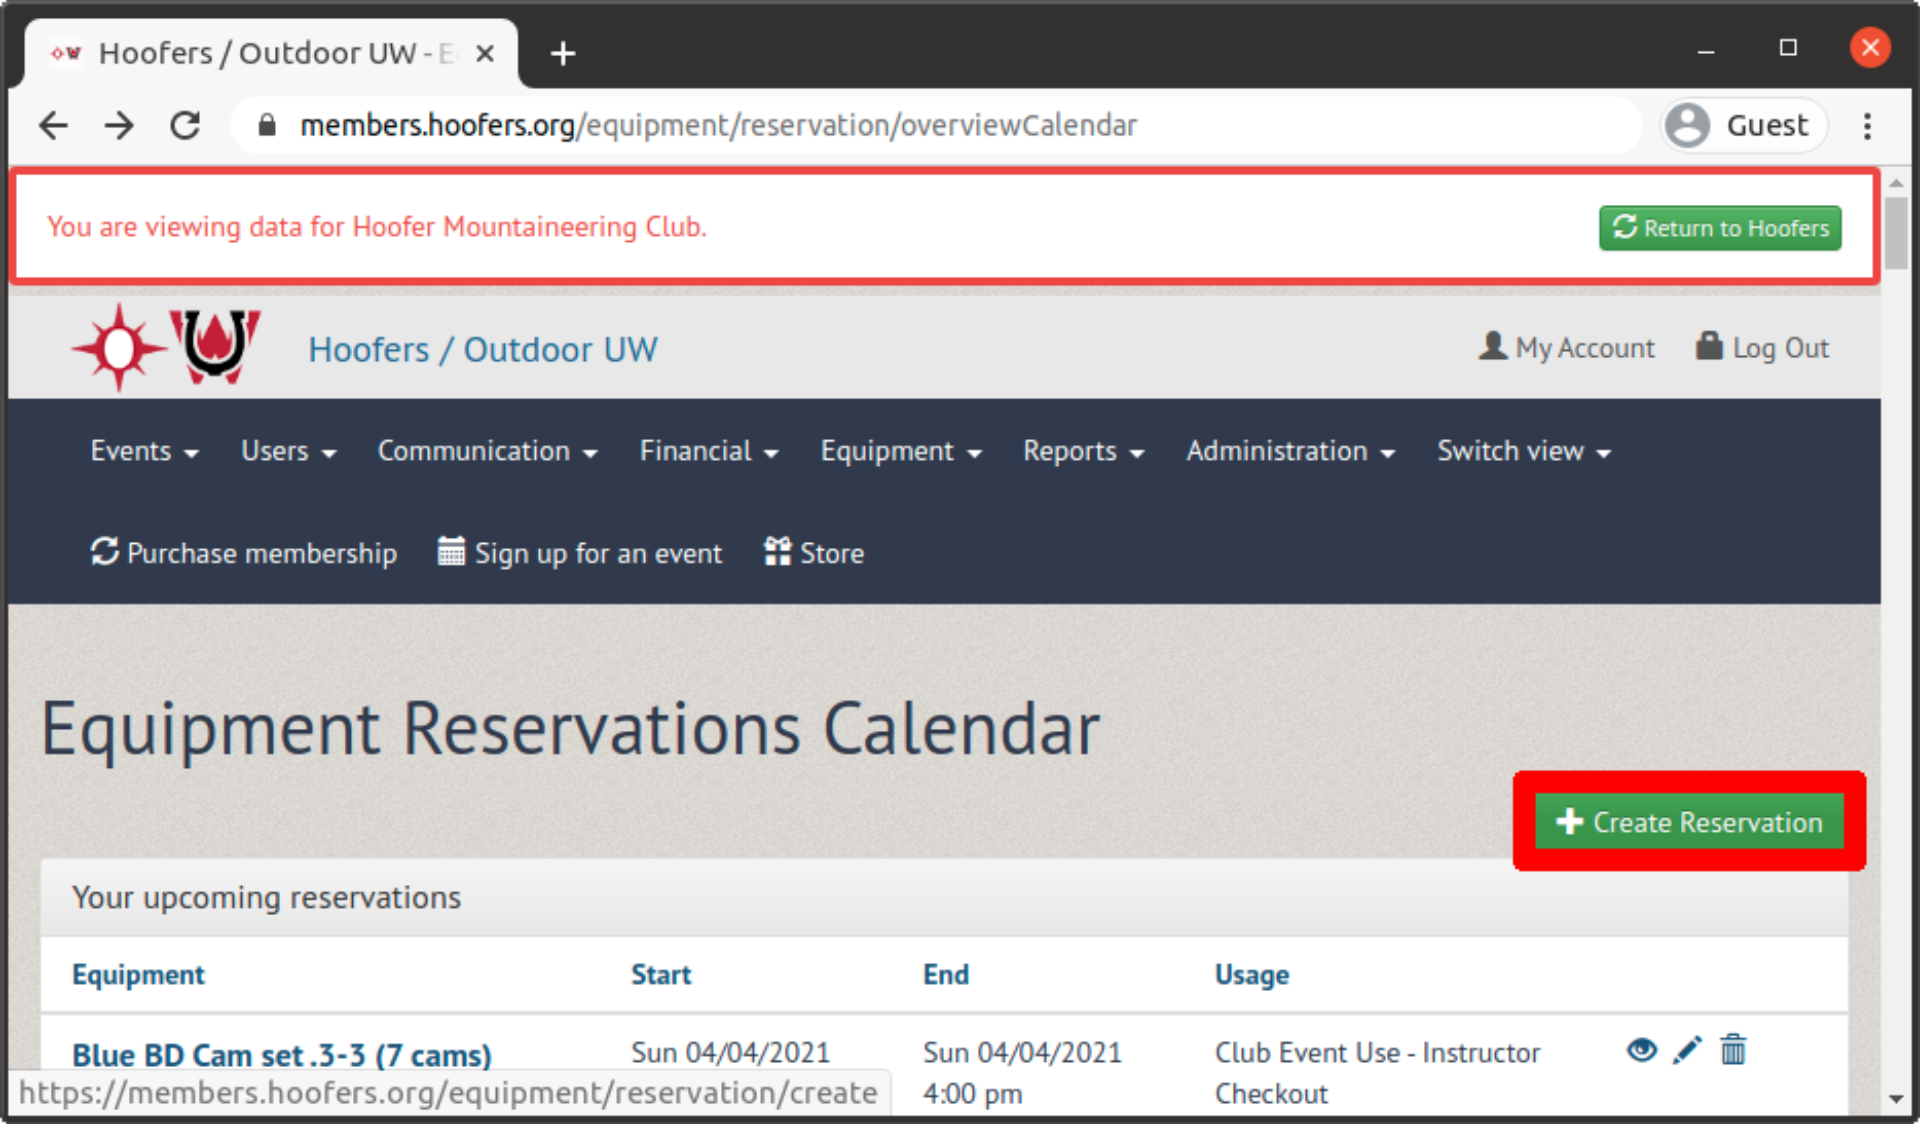 Create reservation